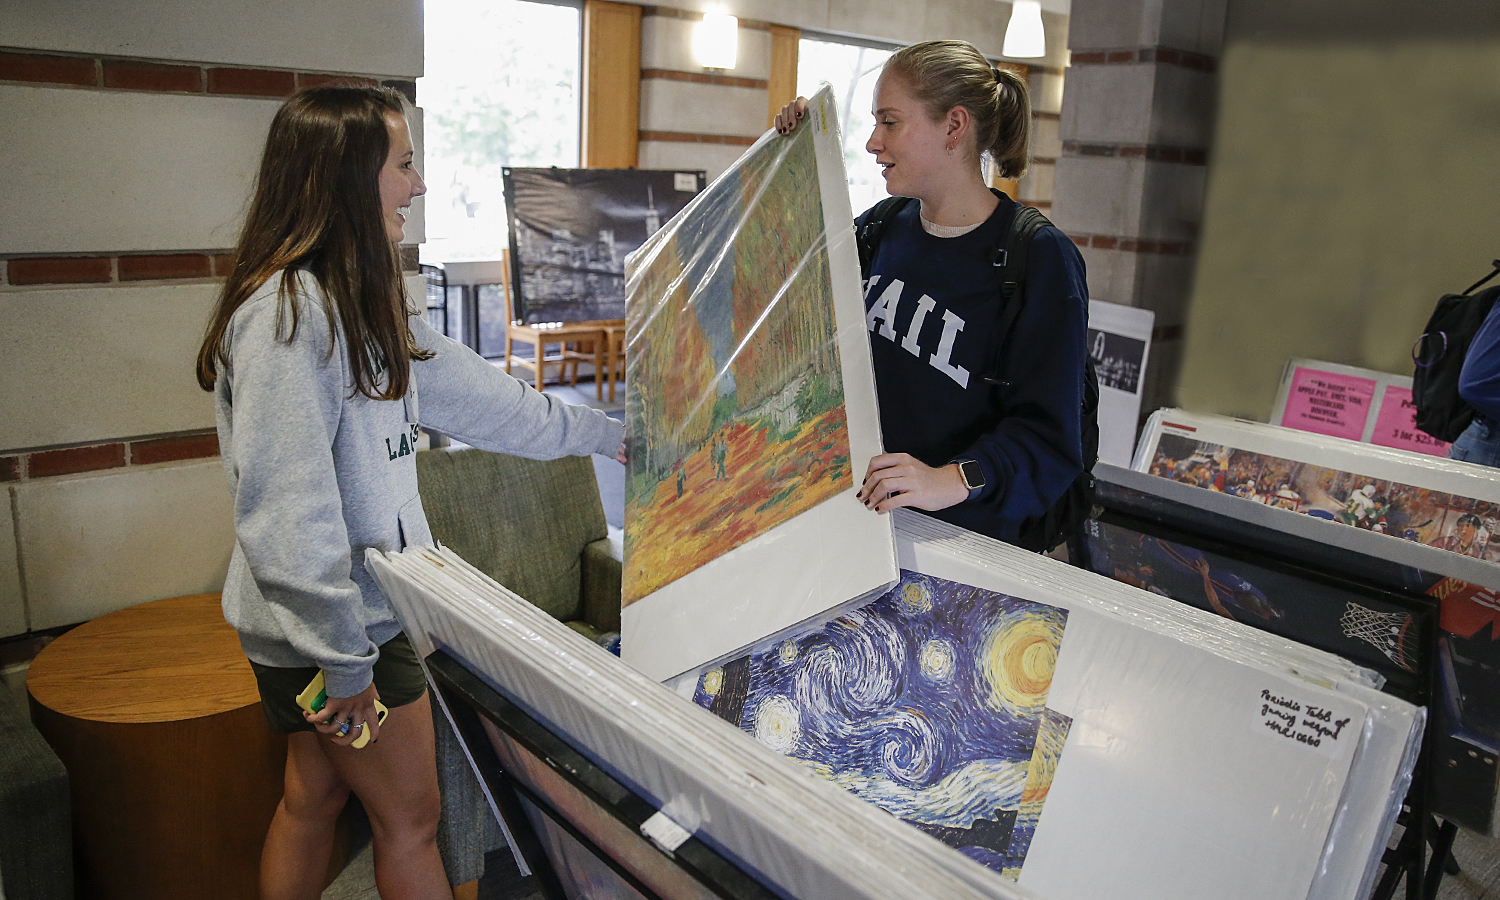 Sadie Mapstone '21 (left) and Emma Levensohn '21 check out a poster of a painting by Vinent Van Gogh during the annual poster sale in the Scandling Campus Center.